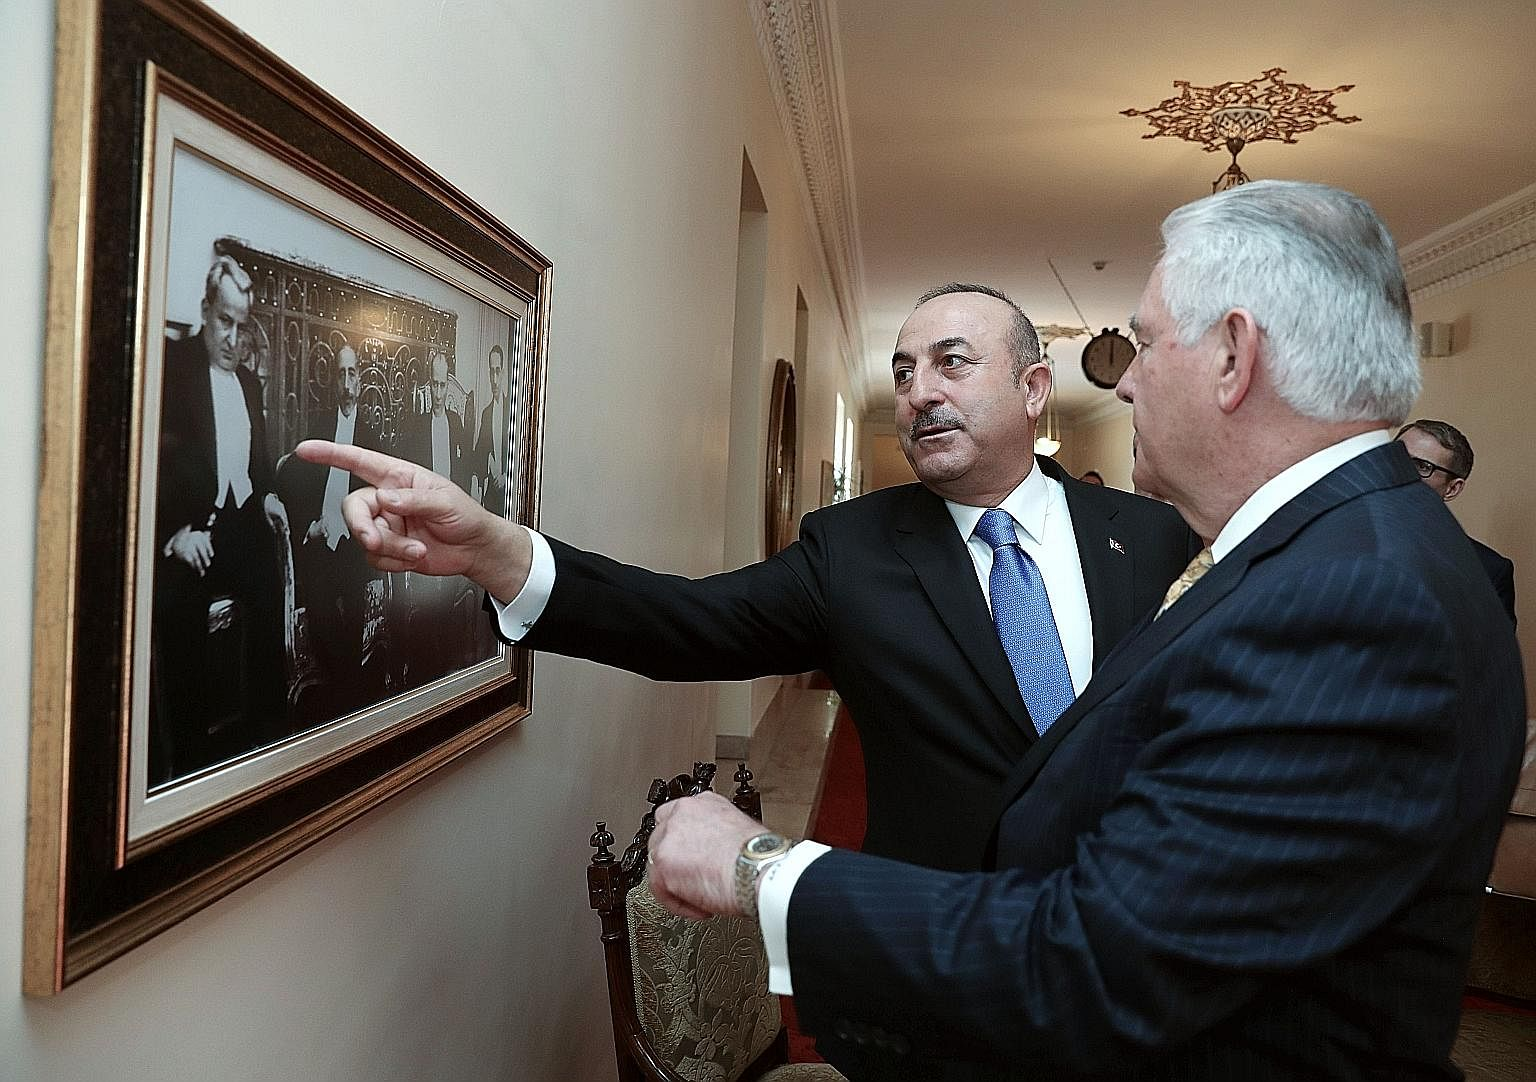 United States Secretary of State Rex Tillerson being shown a picture of the founder of modern Turkey, Mustafa Kemal Ataturk, by Turkish Foreign Minister Mevlut Cavusoglu last Friday. Mr Tillerson's main focus during his stopover in Ankara was the str